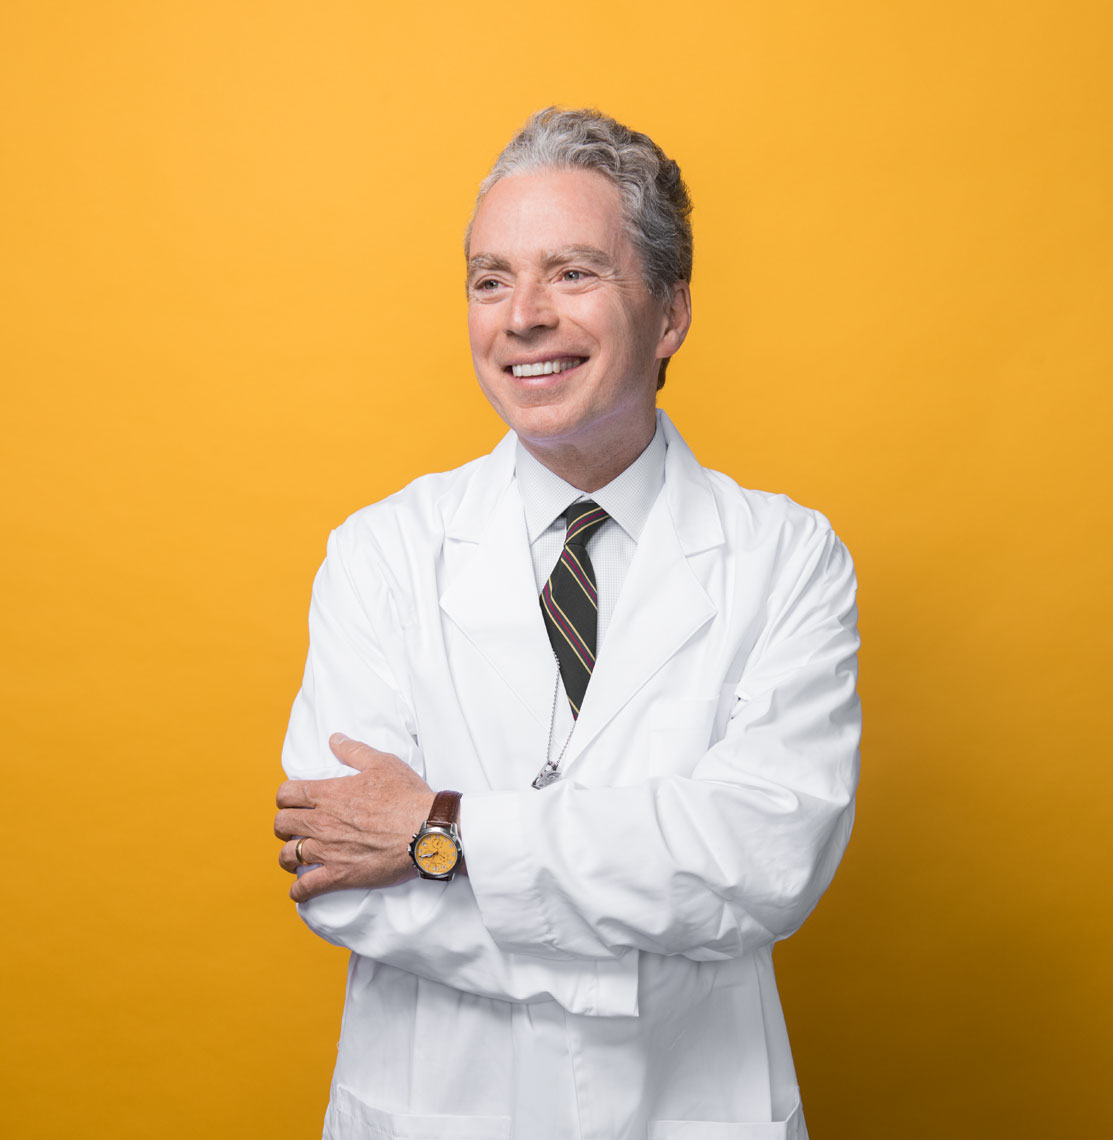 Dr. Paul Gurbel smiling in his lab coat in front of a yellow background